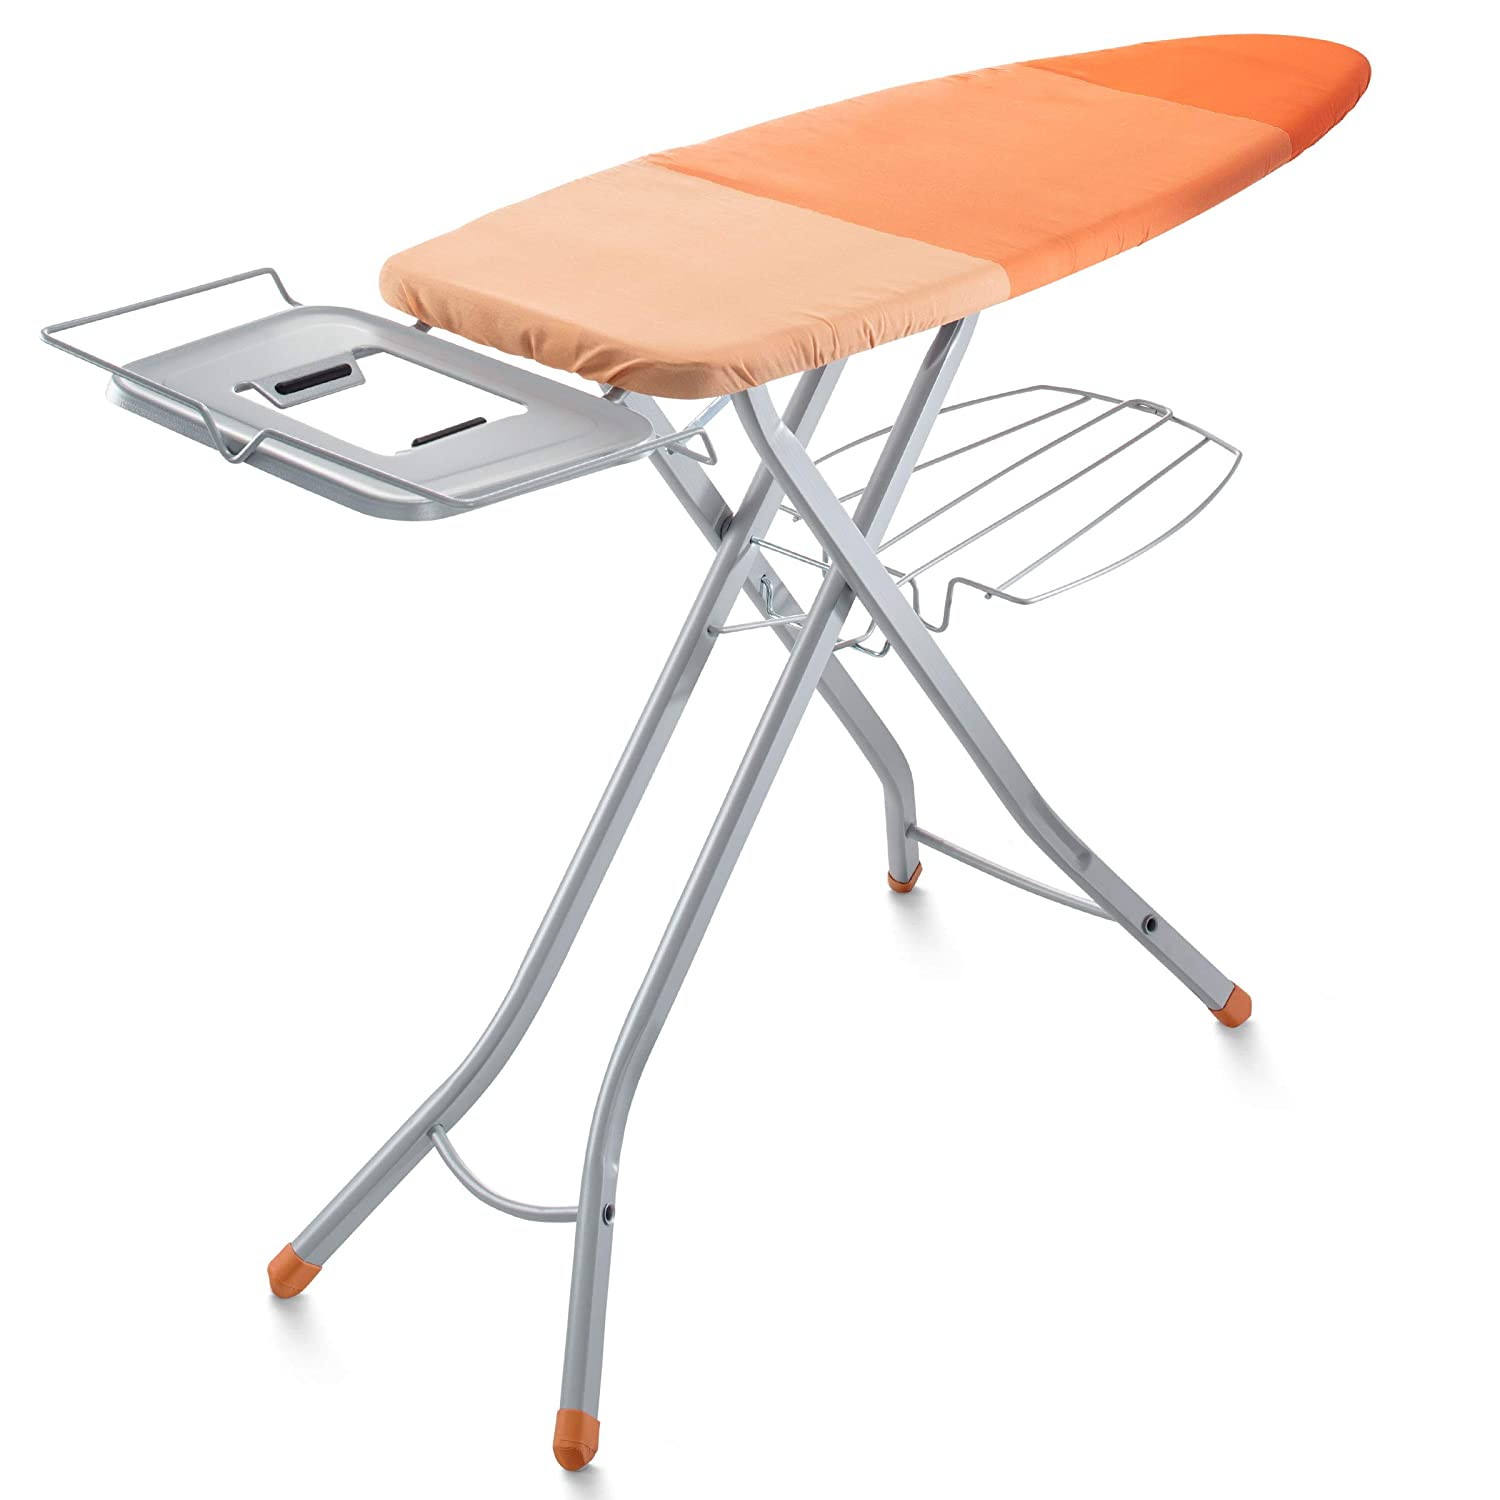 Bartnelli ironing board